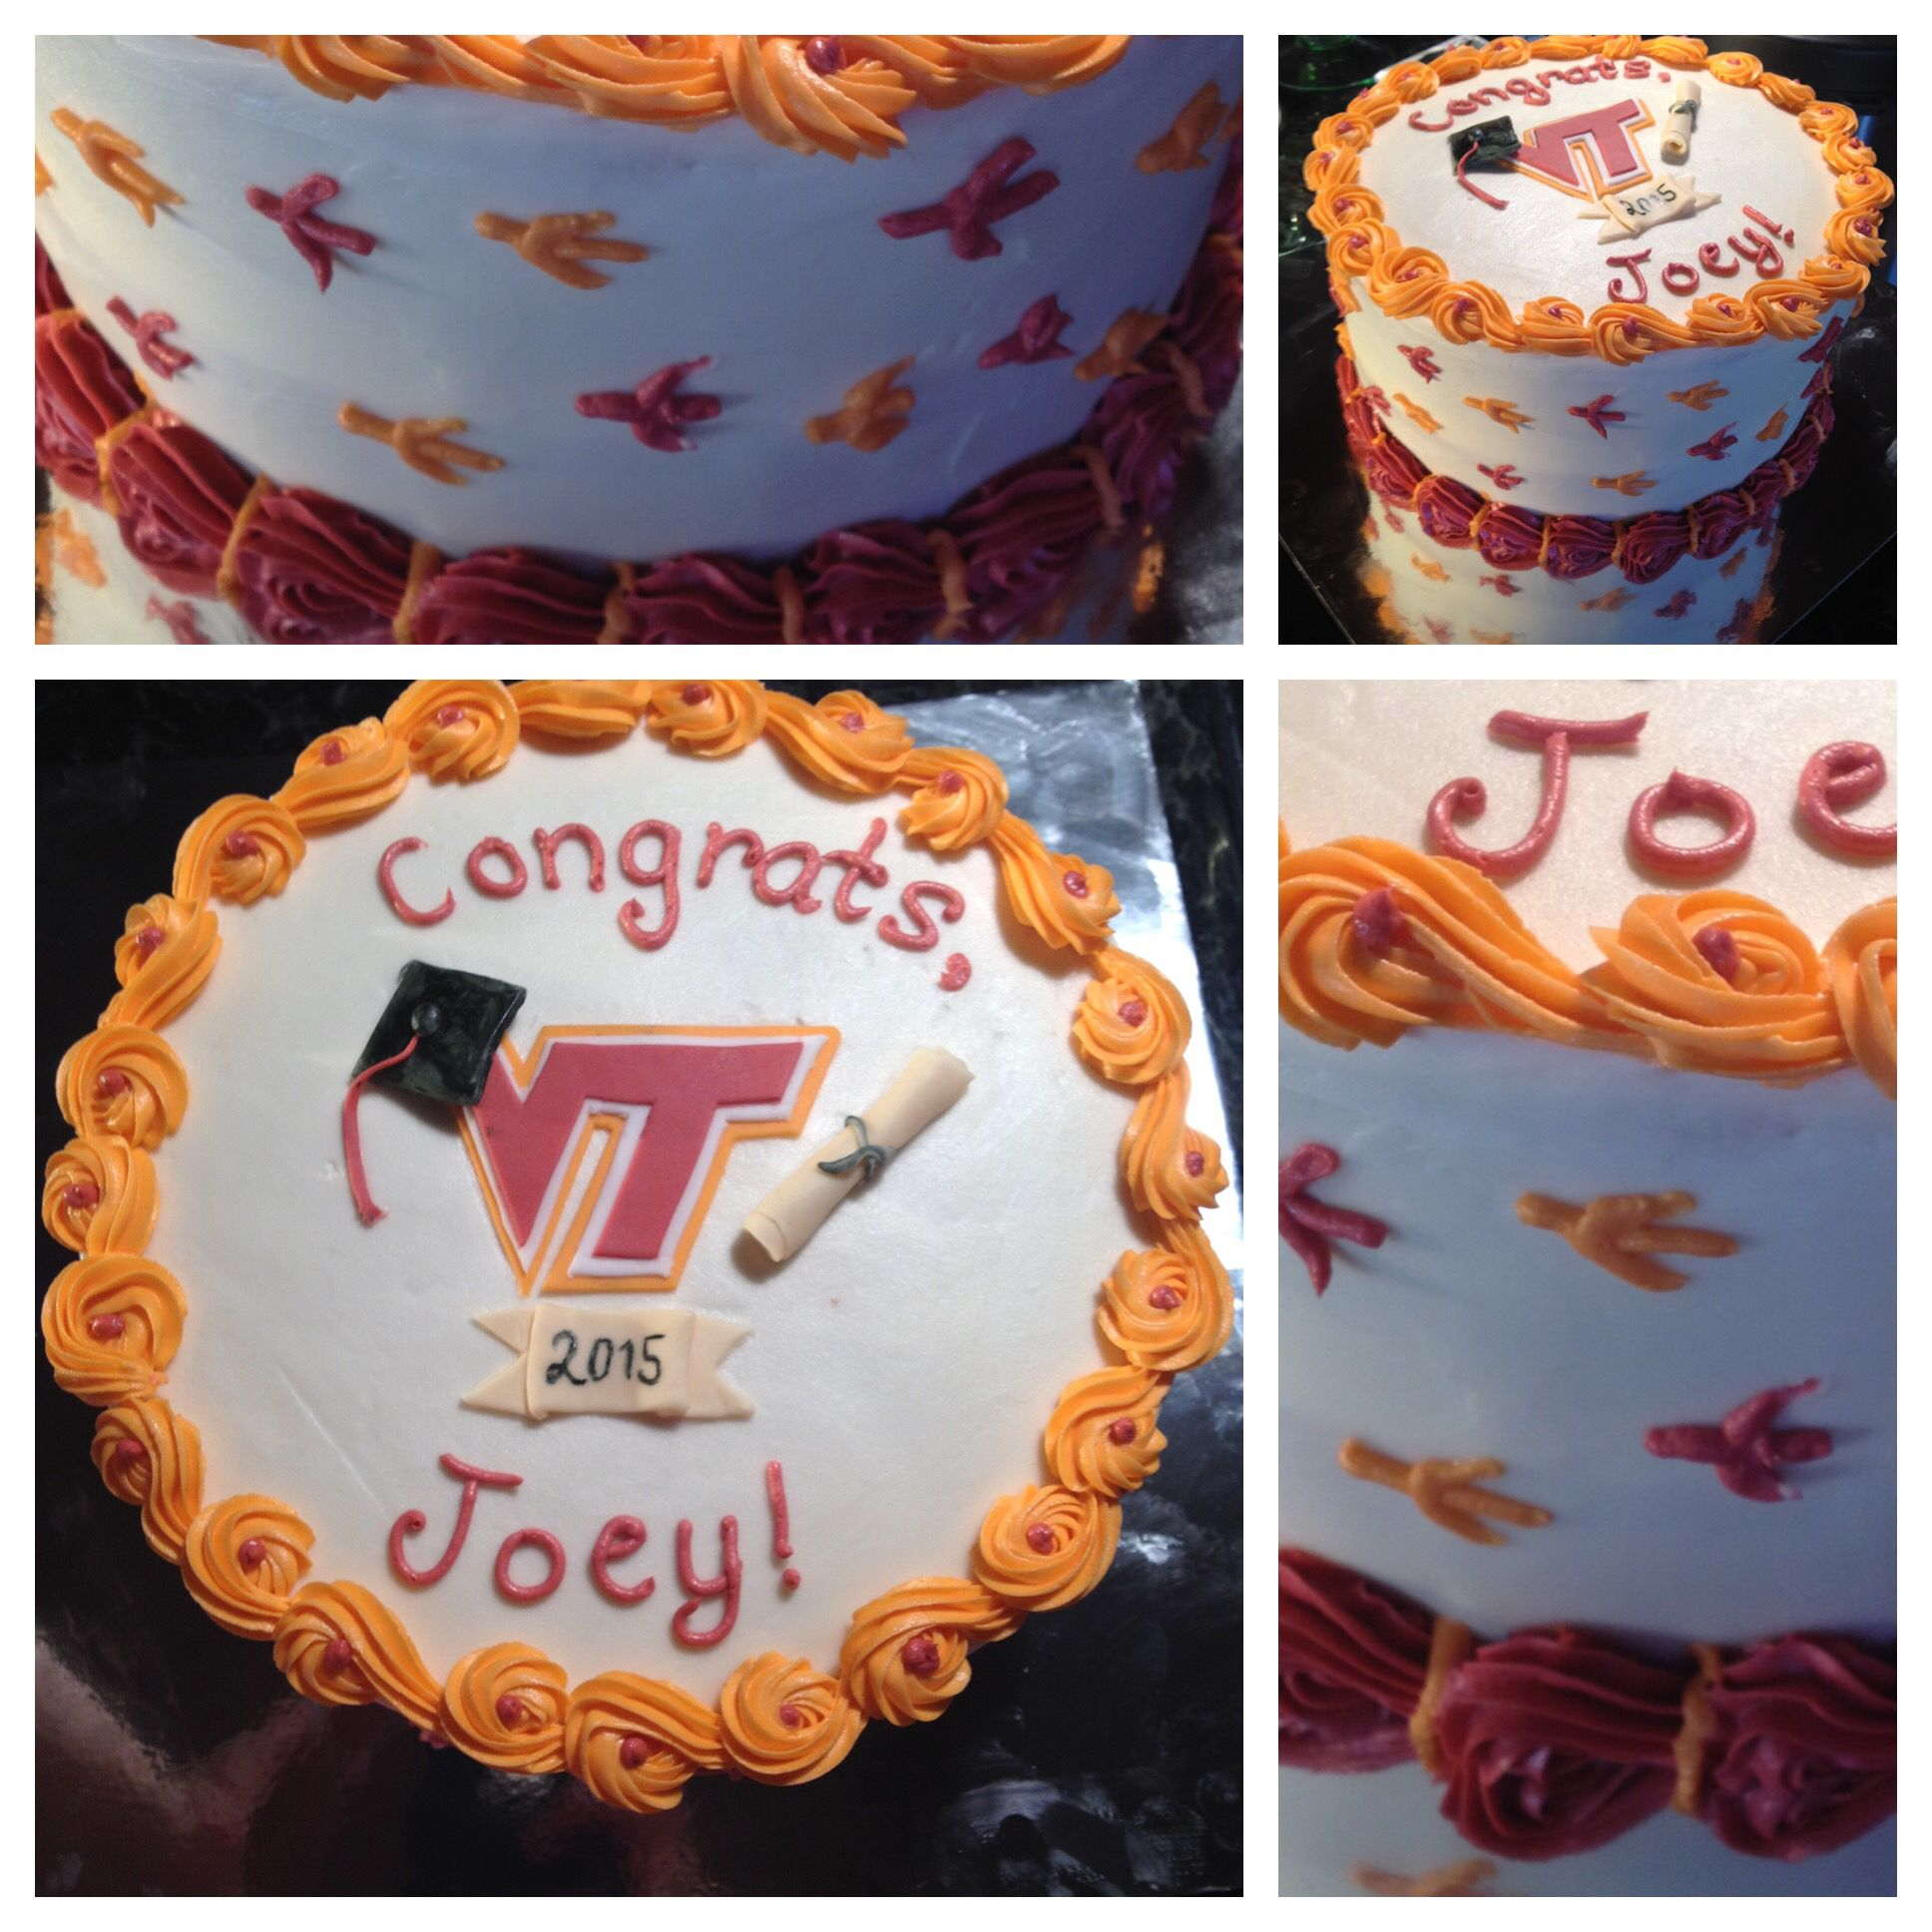 Virginia Tech Graduation Cake